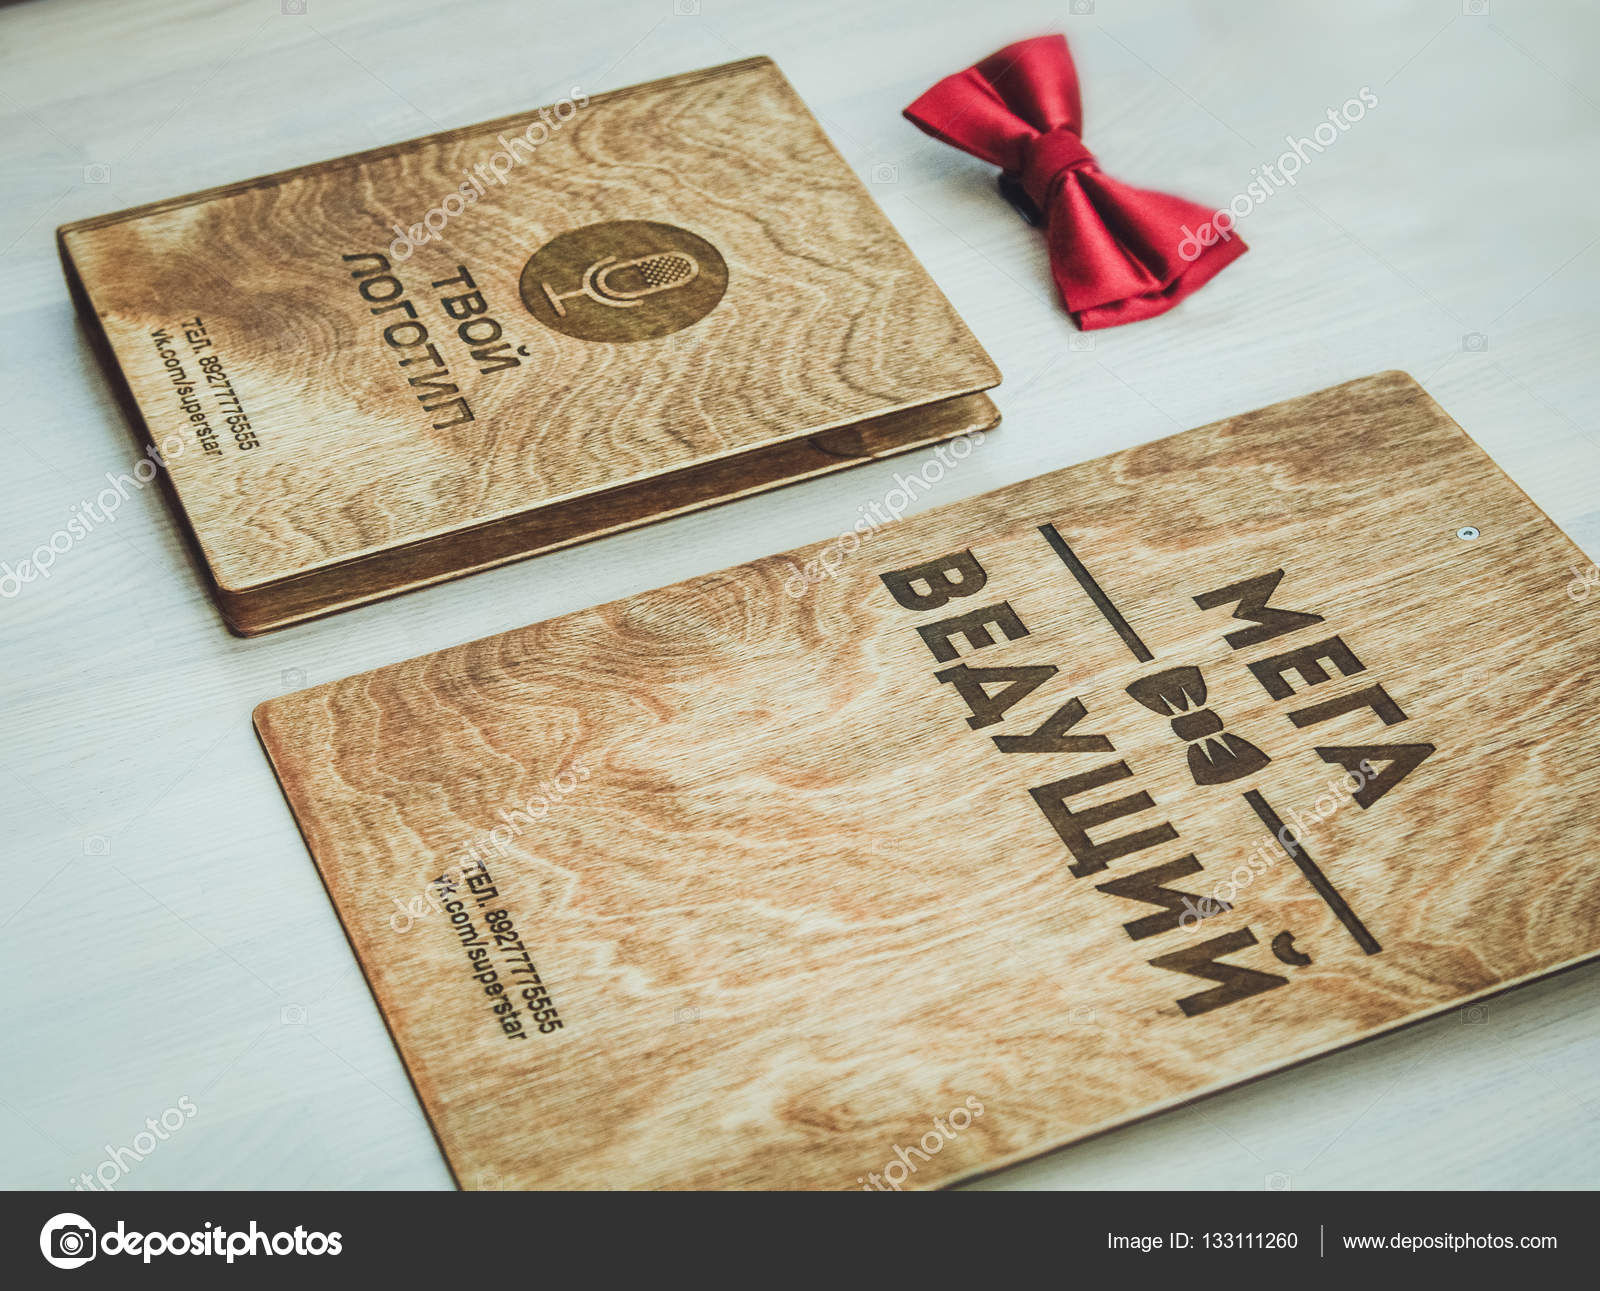 Stylish logo on a wooden tablet for the leading — Stock